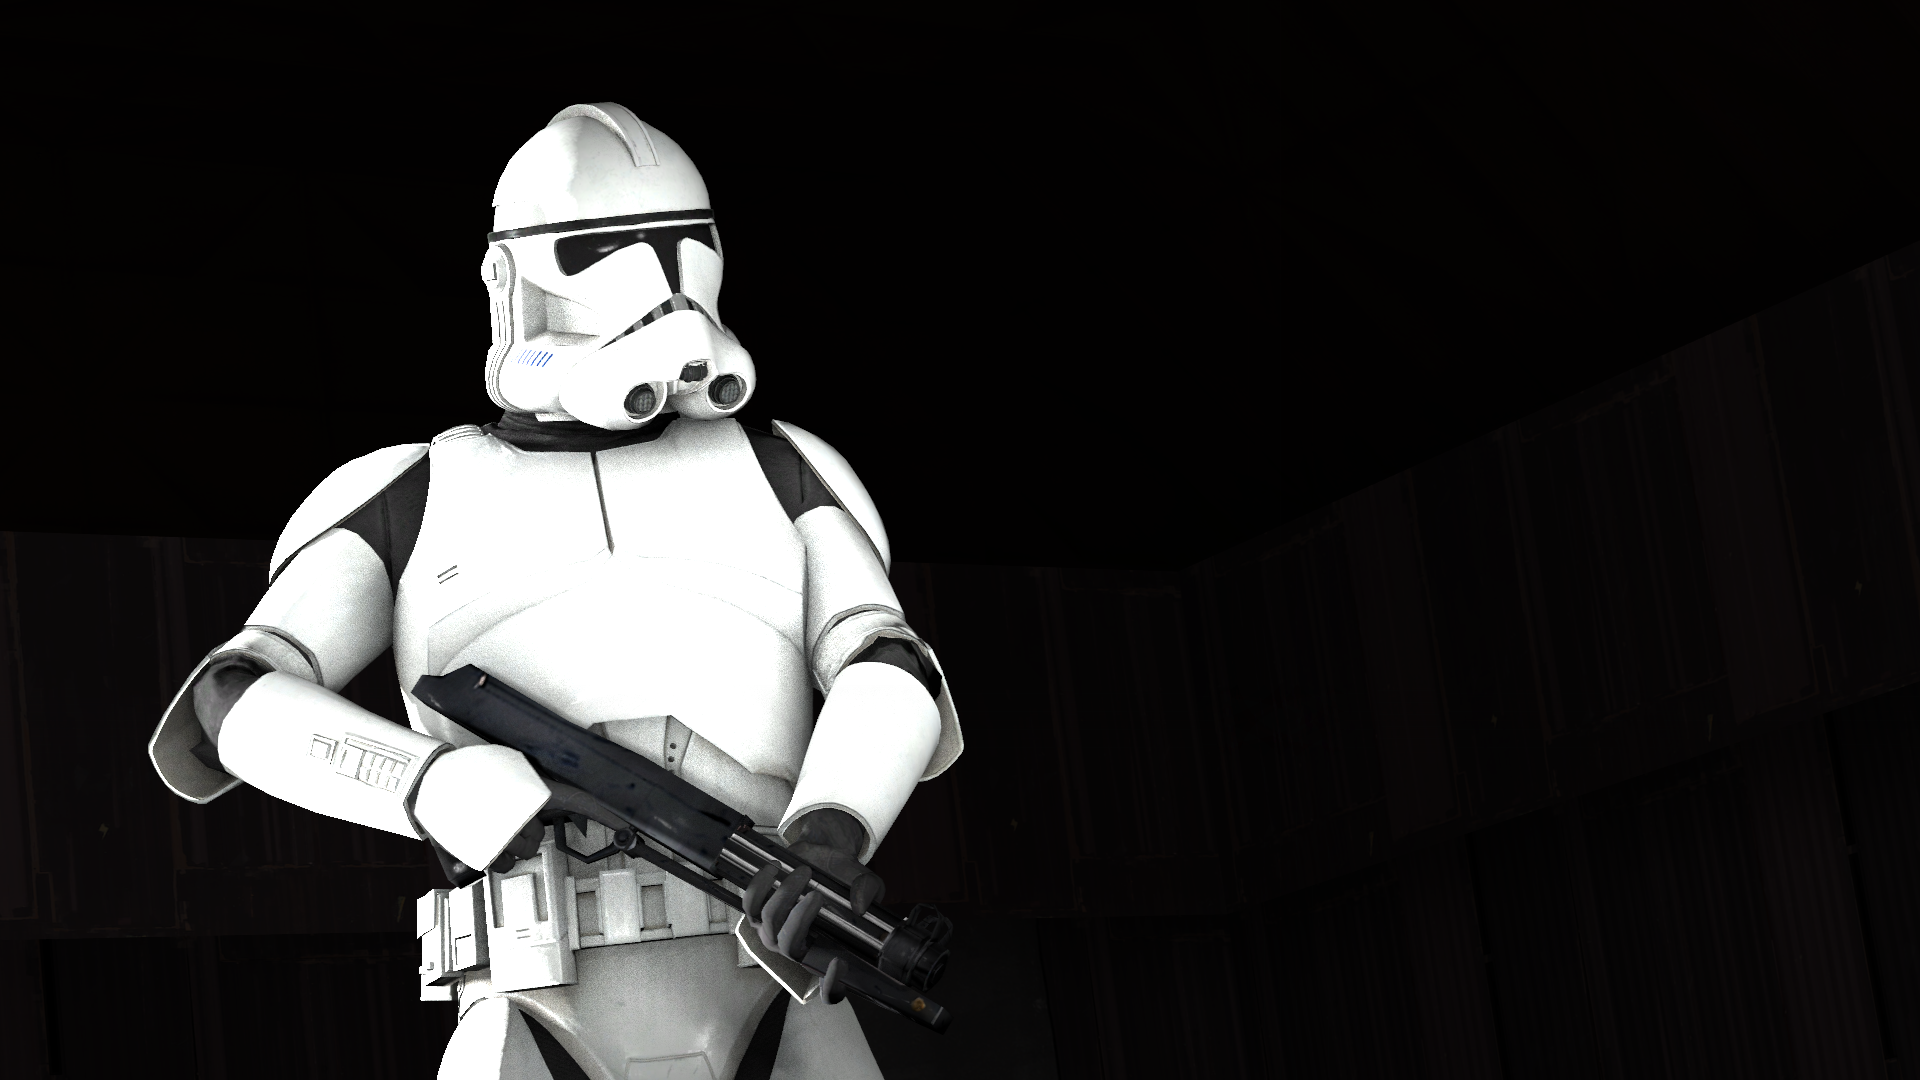 Toy Trooper Wallpapers